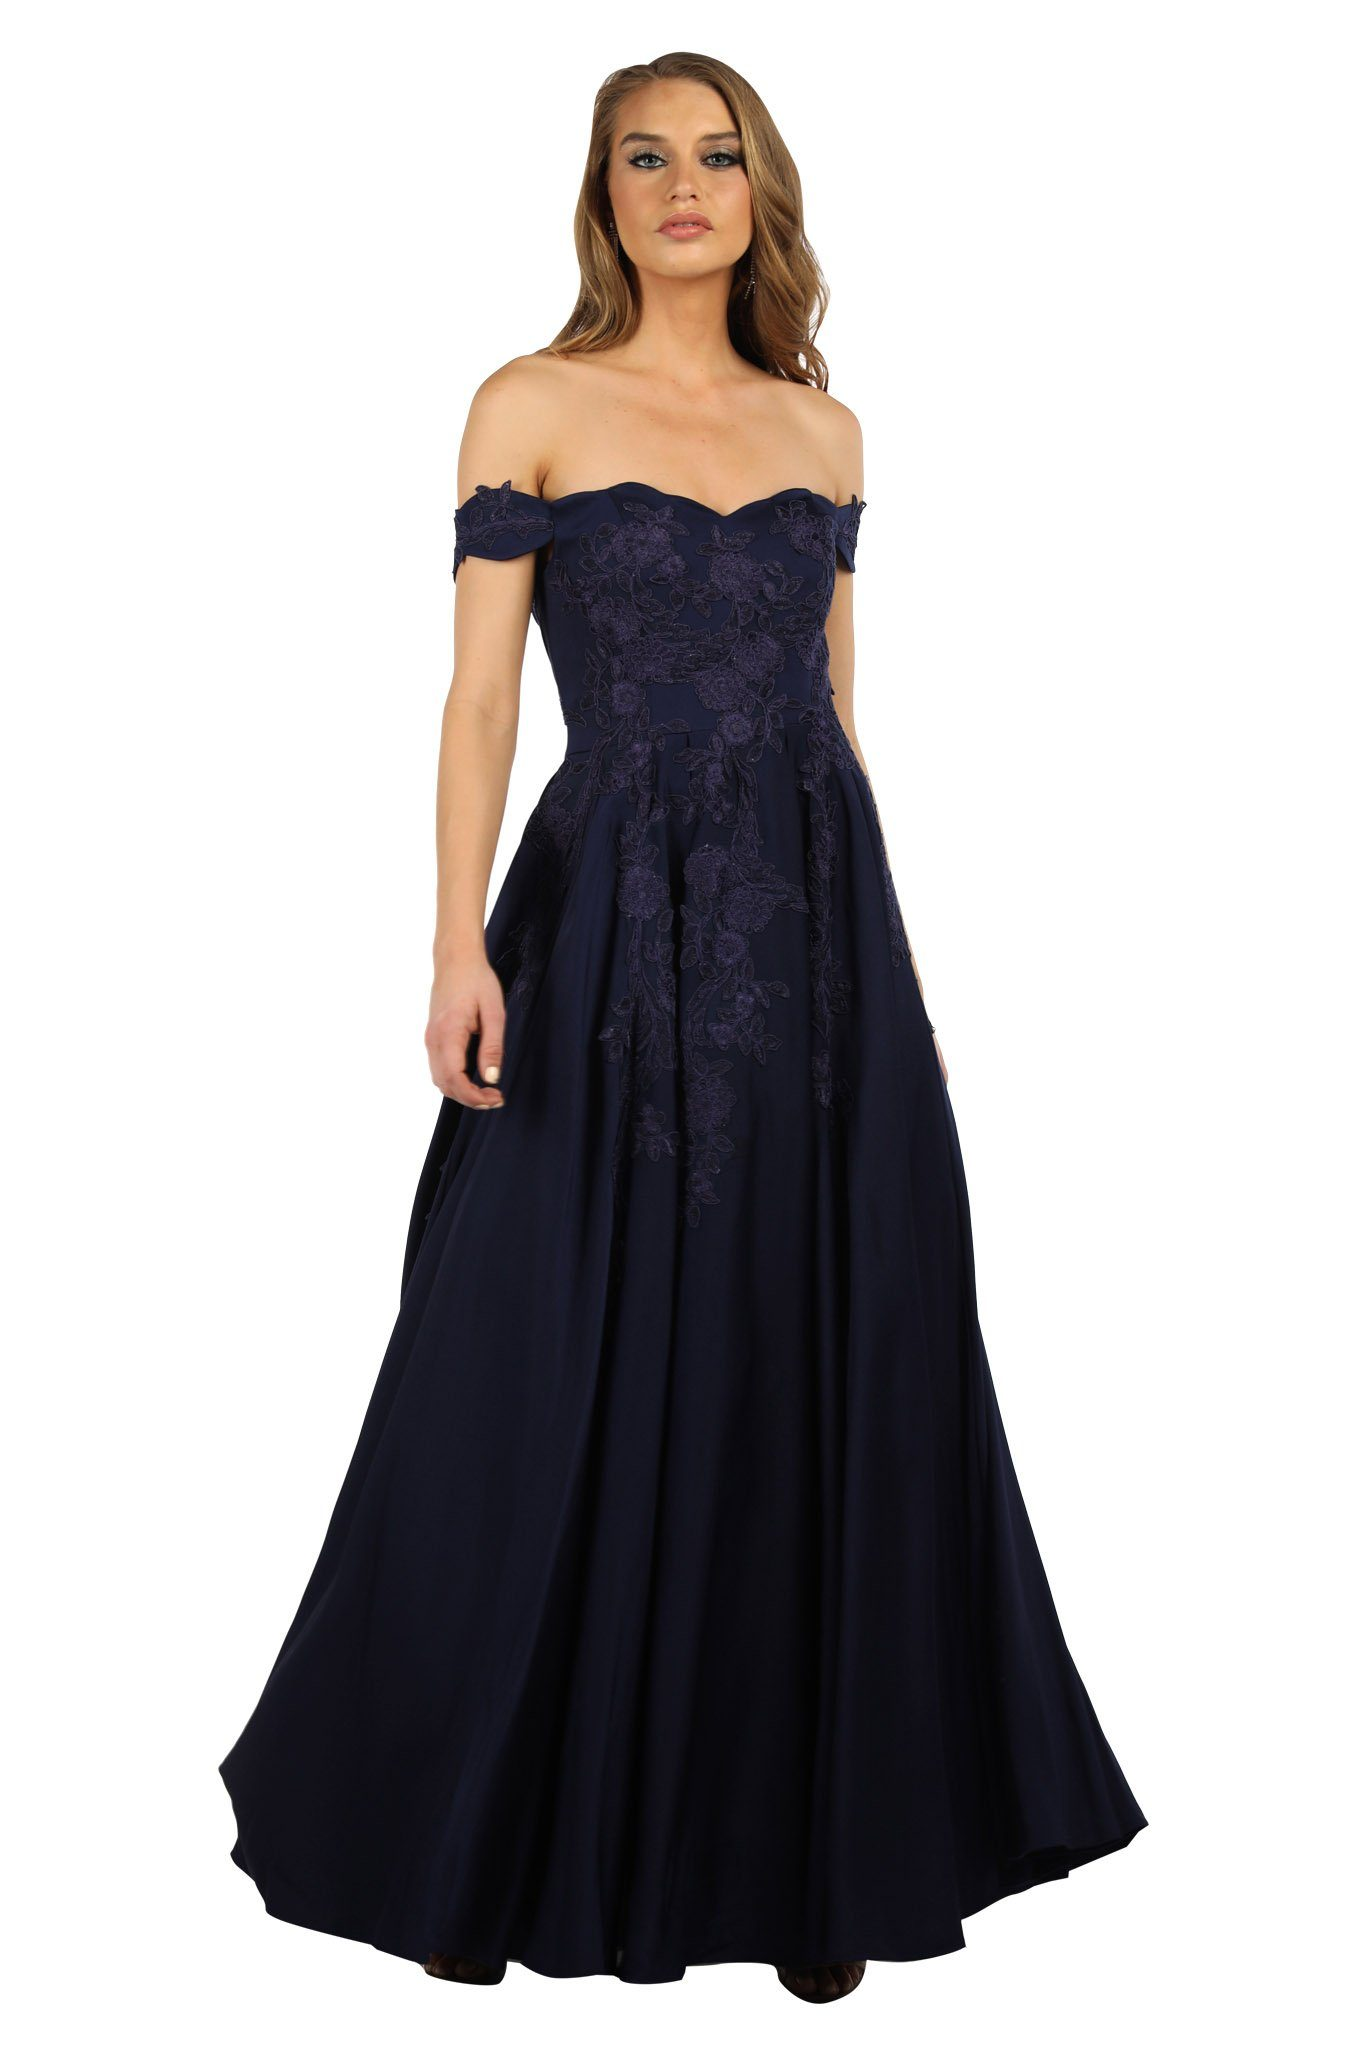 Navy deep blue ball gown in strapless off-shoulder sweetheart neckline, cap sleeves, lace detailing, open back, A-line flared floor-length skirt